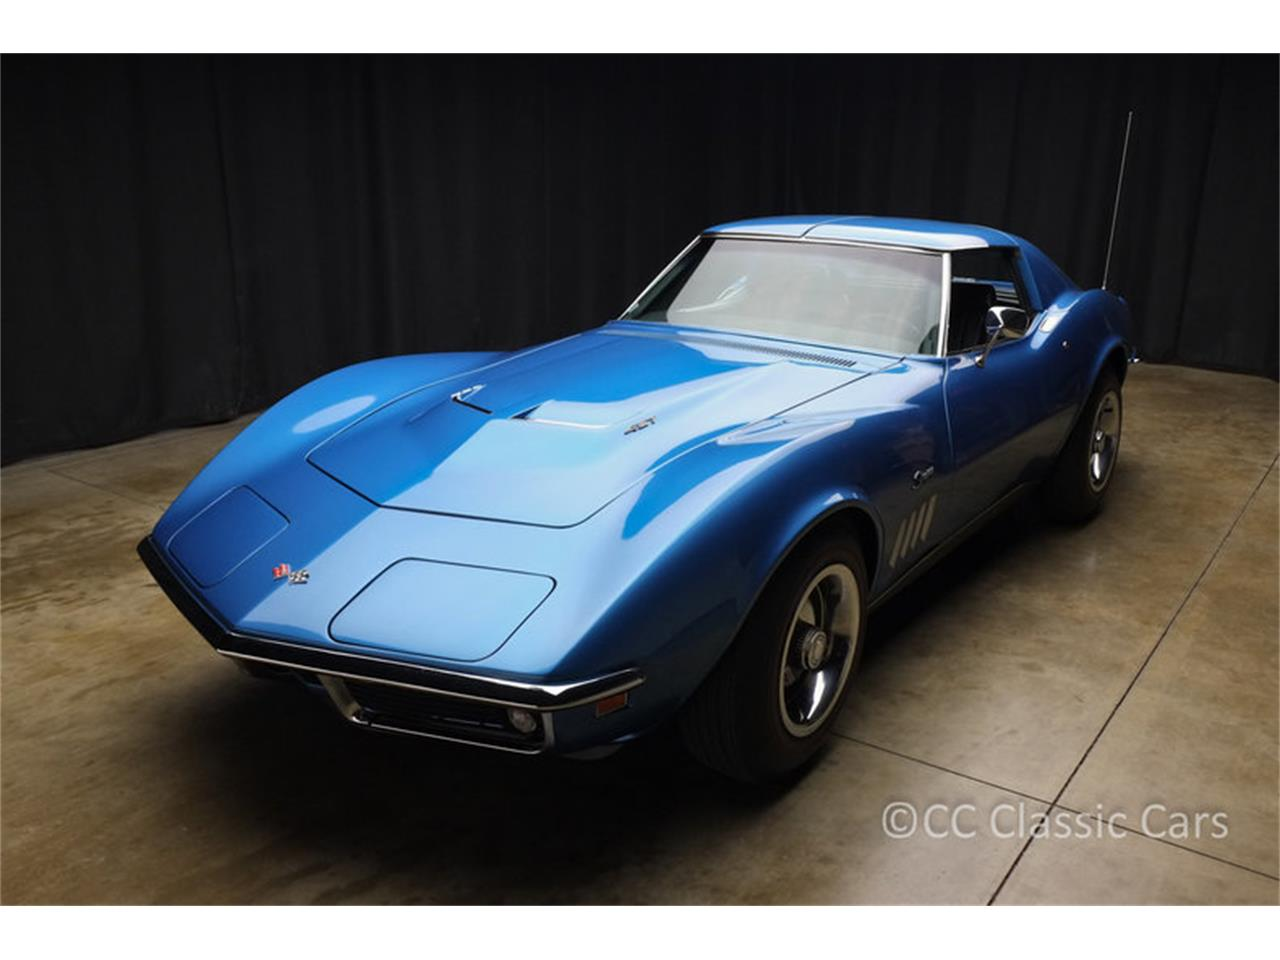 Large Picture of 1969 Corvette located in West Chester Pennsylvania Auction Vehicle - HYYM